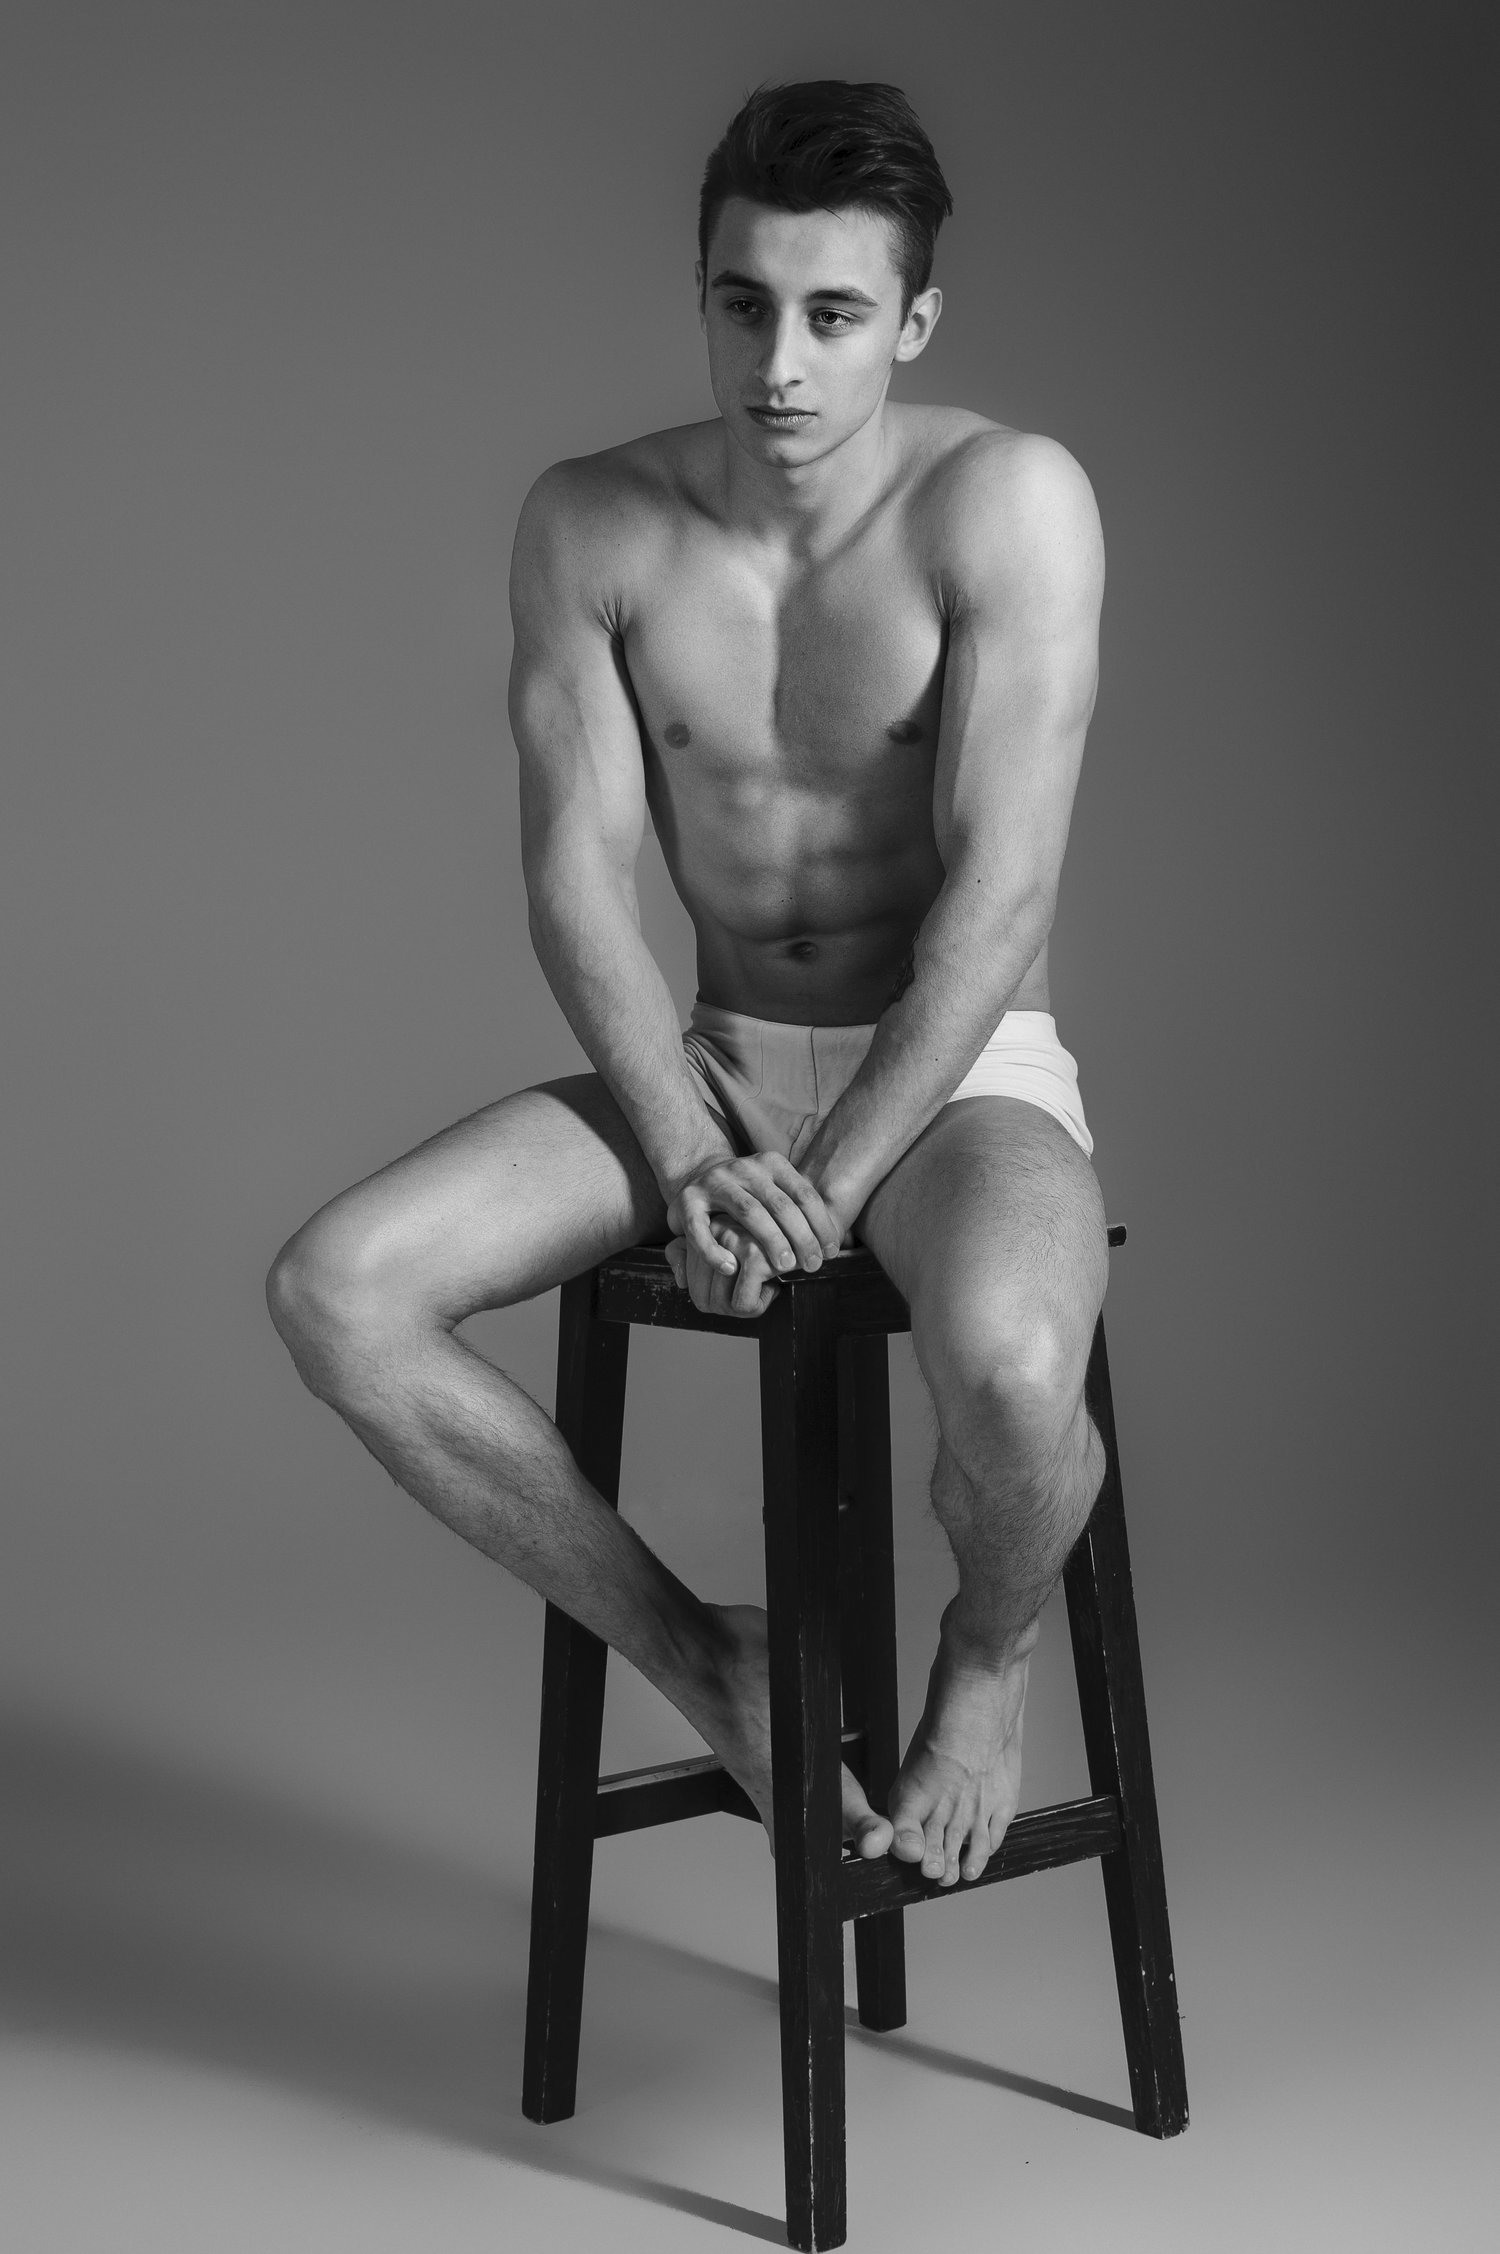 Adon Exclusive: Model David Van Lee By Walter Summer